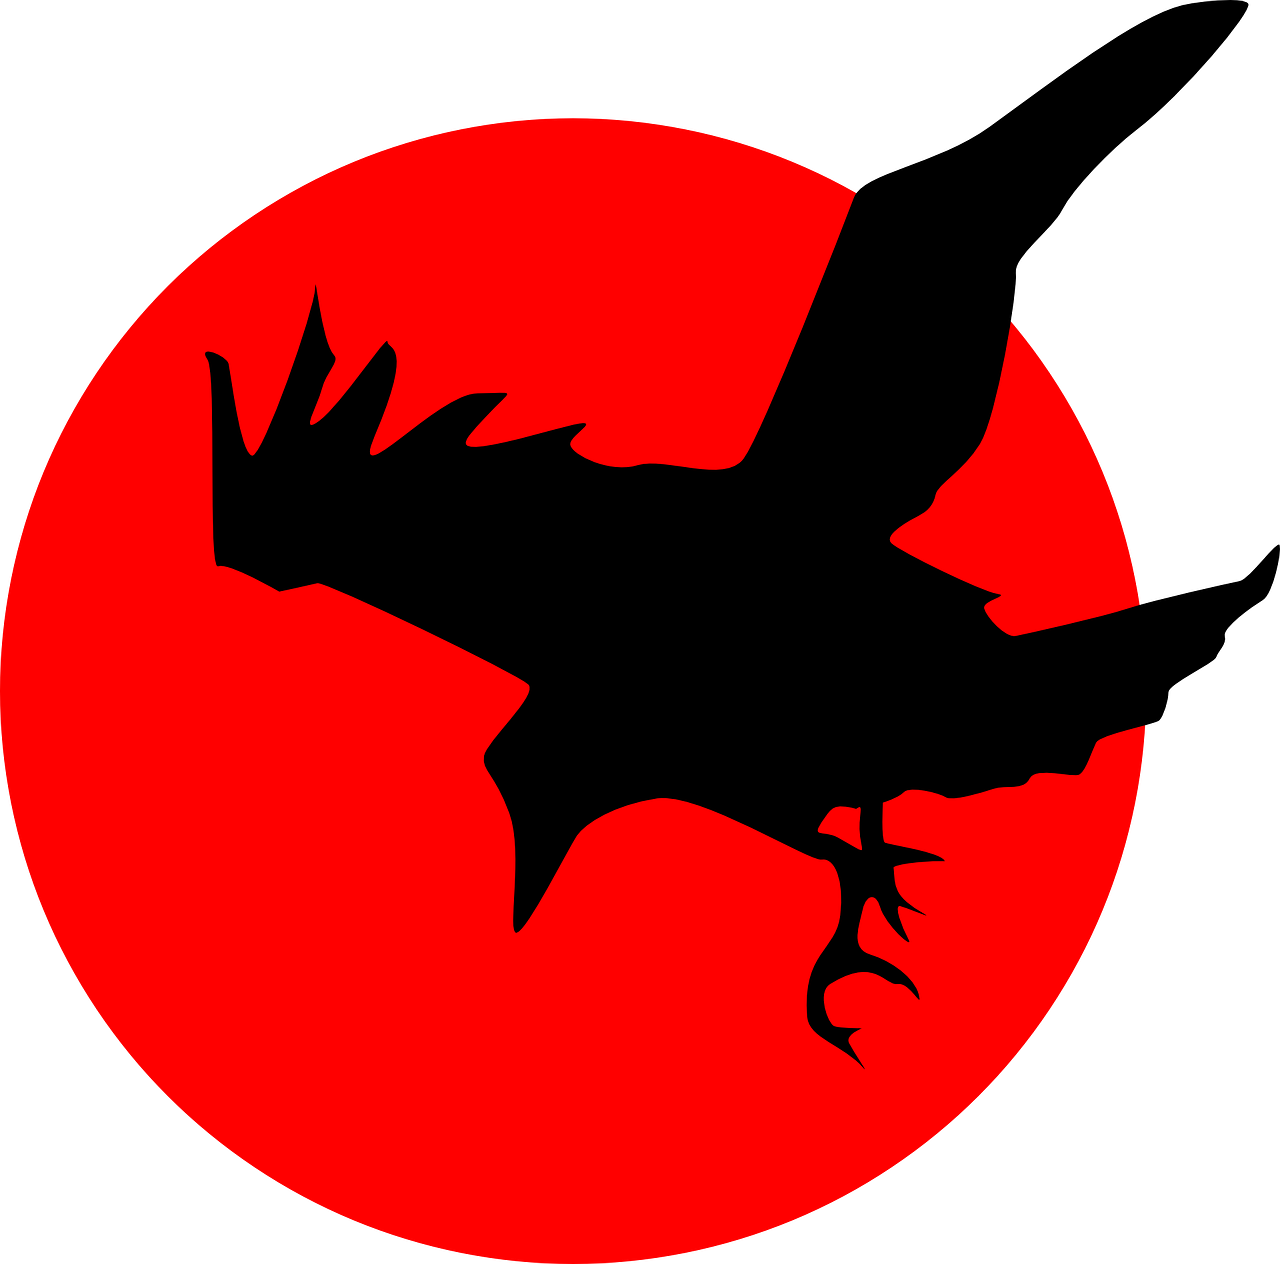 Crow Flying Silhouette   Free vector graphic on Pixabay